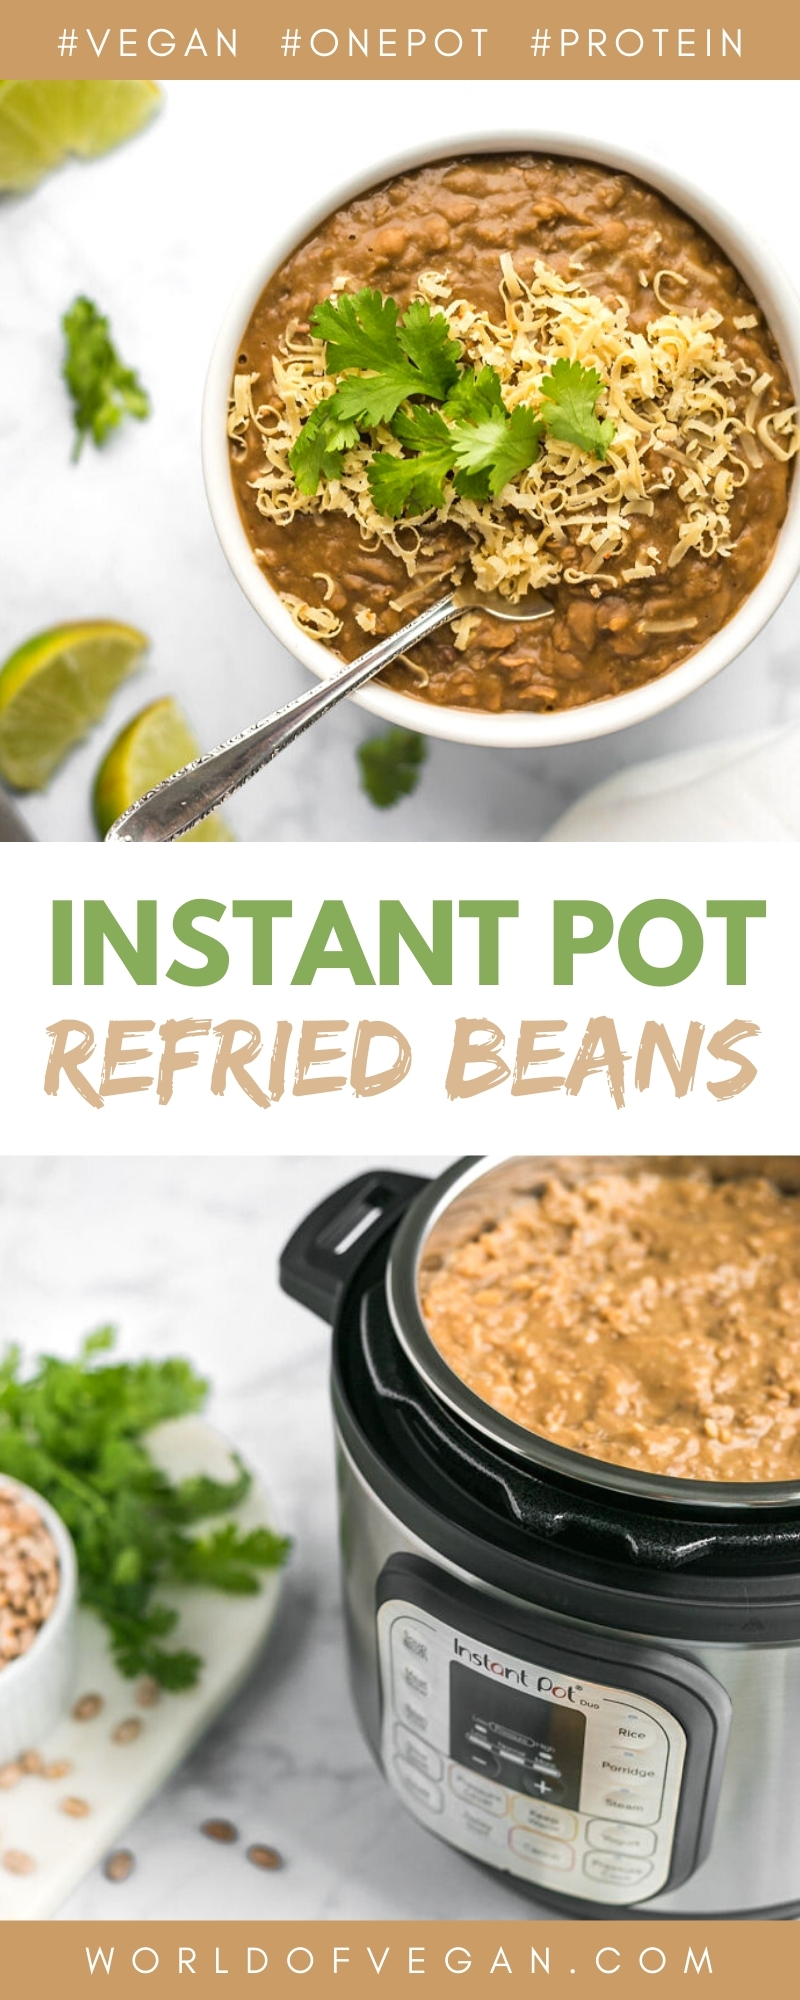 Easy Instant Pot Refried Beans Recipe